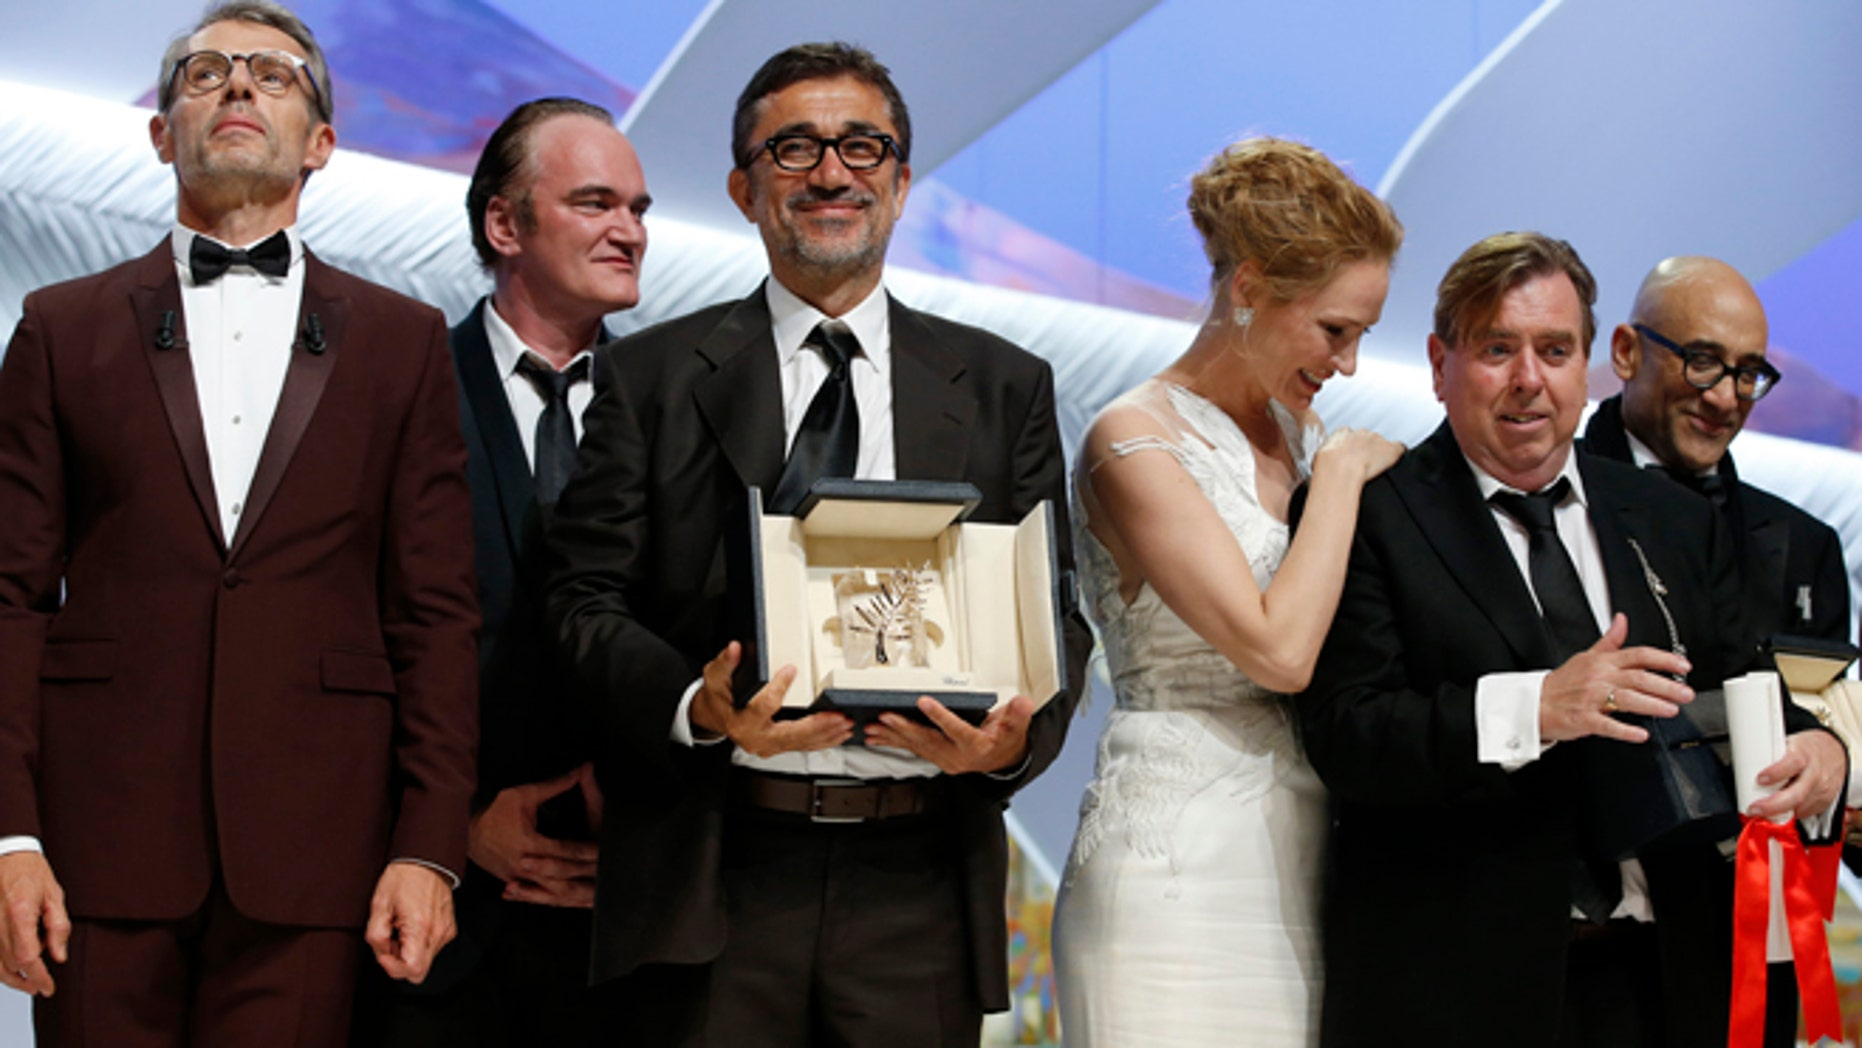 May 24, 2014: Director Nuri Bilge Ceylan, center, poses with the Palme d'Or award for the film Winter Sleep and actor Timothy Spall, second right, poses with his award for Best Actor for his role in the film Mr. Turner during the awards ceremony for the 67th international film festival, Cannes, southern France. (AP)